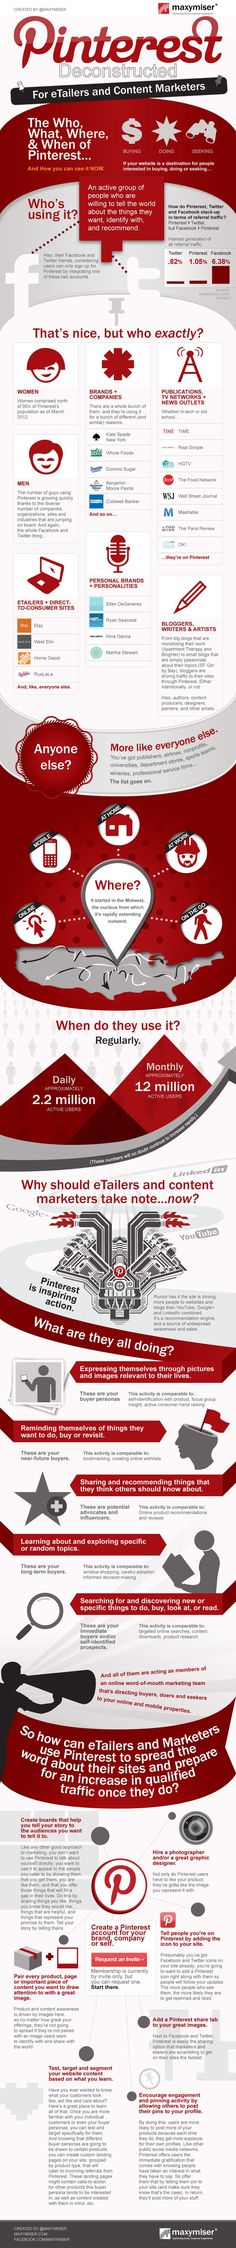 How Pinterest Can Turn Your Brand Red-Hot [infographic] http://mashable.com/2012/03/18/pinterest-brand-attention/